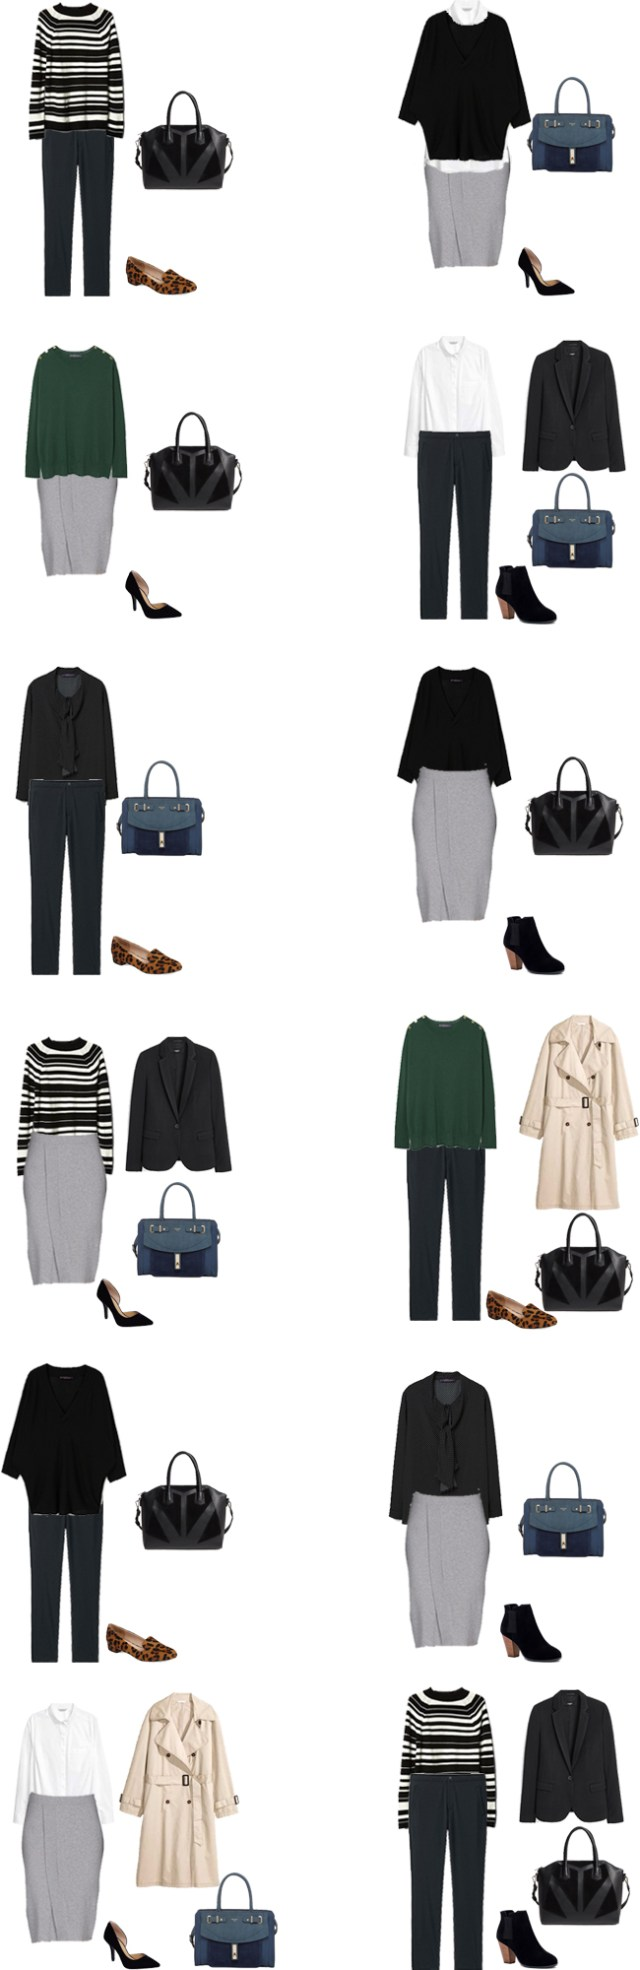 Back to Basics Starter Work Capsule for under $250 Outfit Options #capsule #workwardrobe #capsulewardrobe #staples #basics #livelovesara